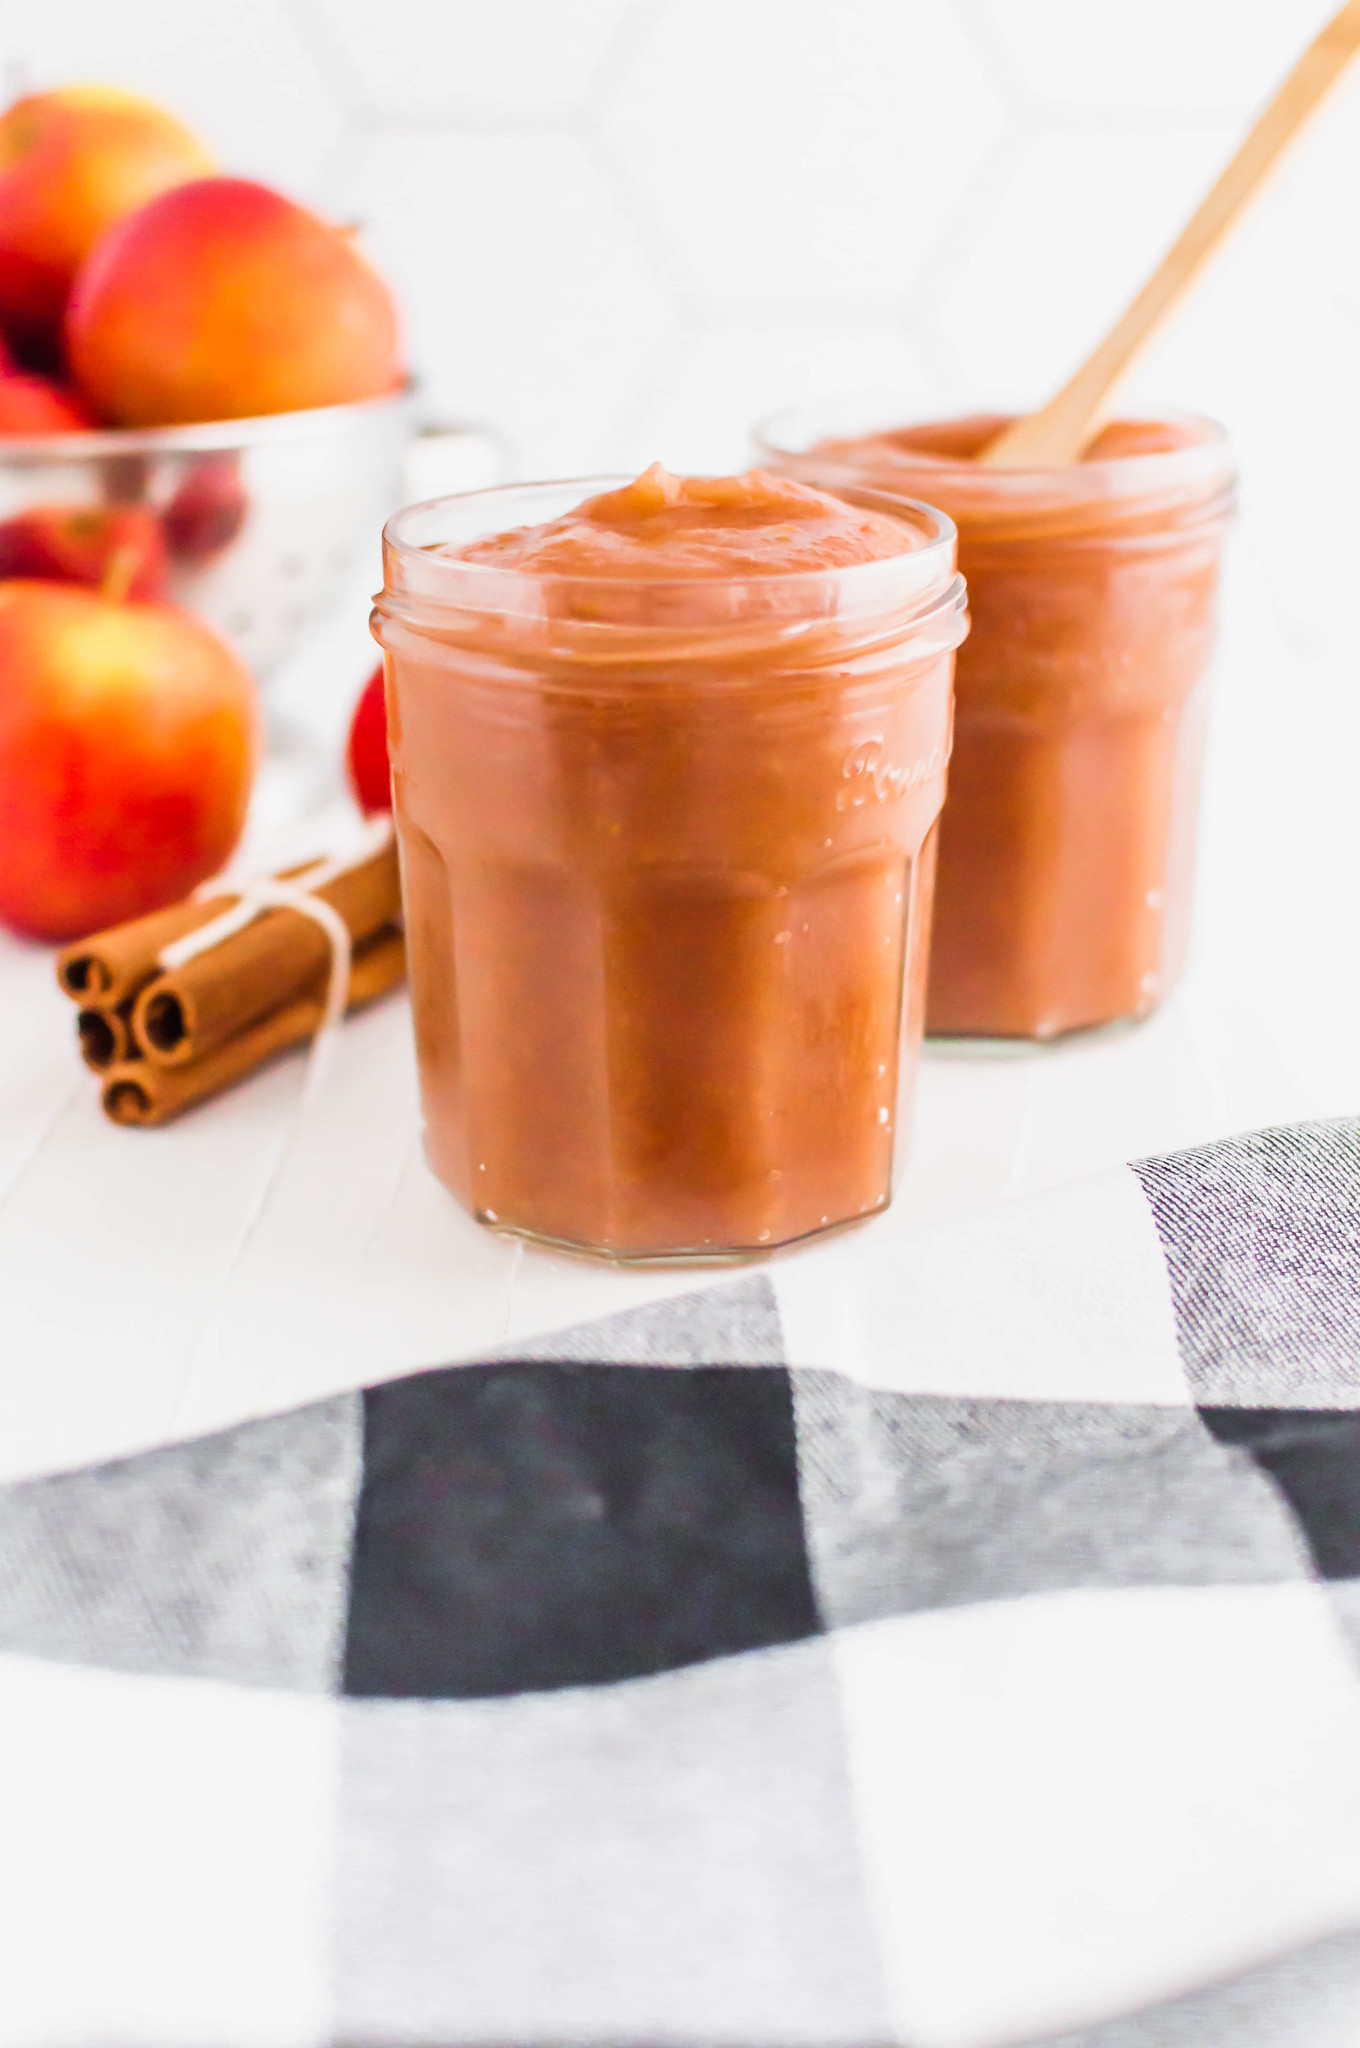 It's apple season! Grab some fresh apples to make your own Instant Pot Applesauce. Simple to make and you can control the ingredients and sweetness. Super fresh and delicious.